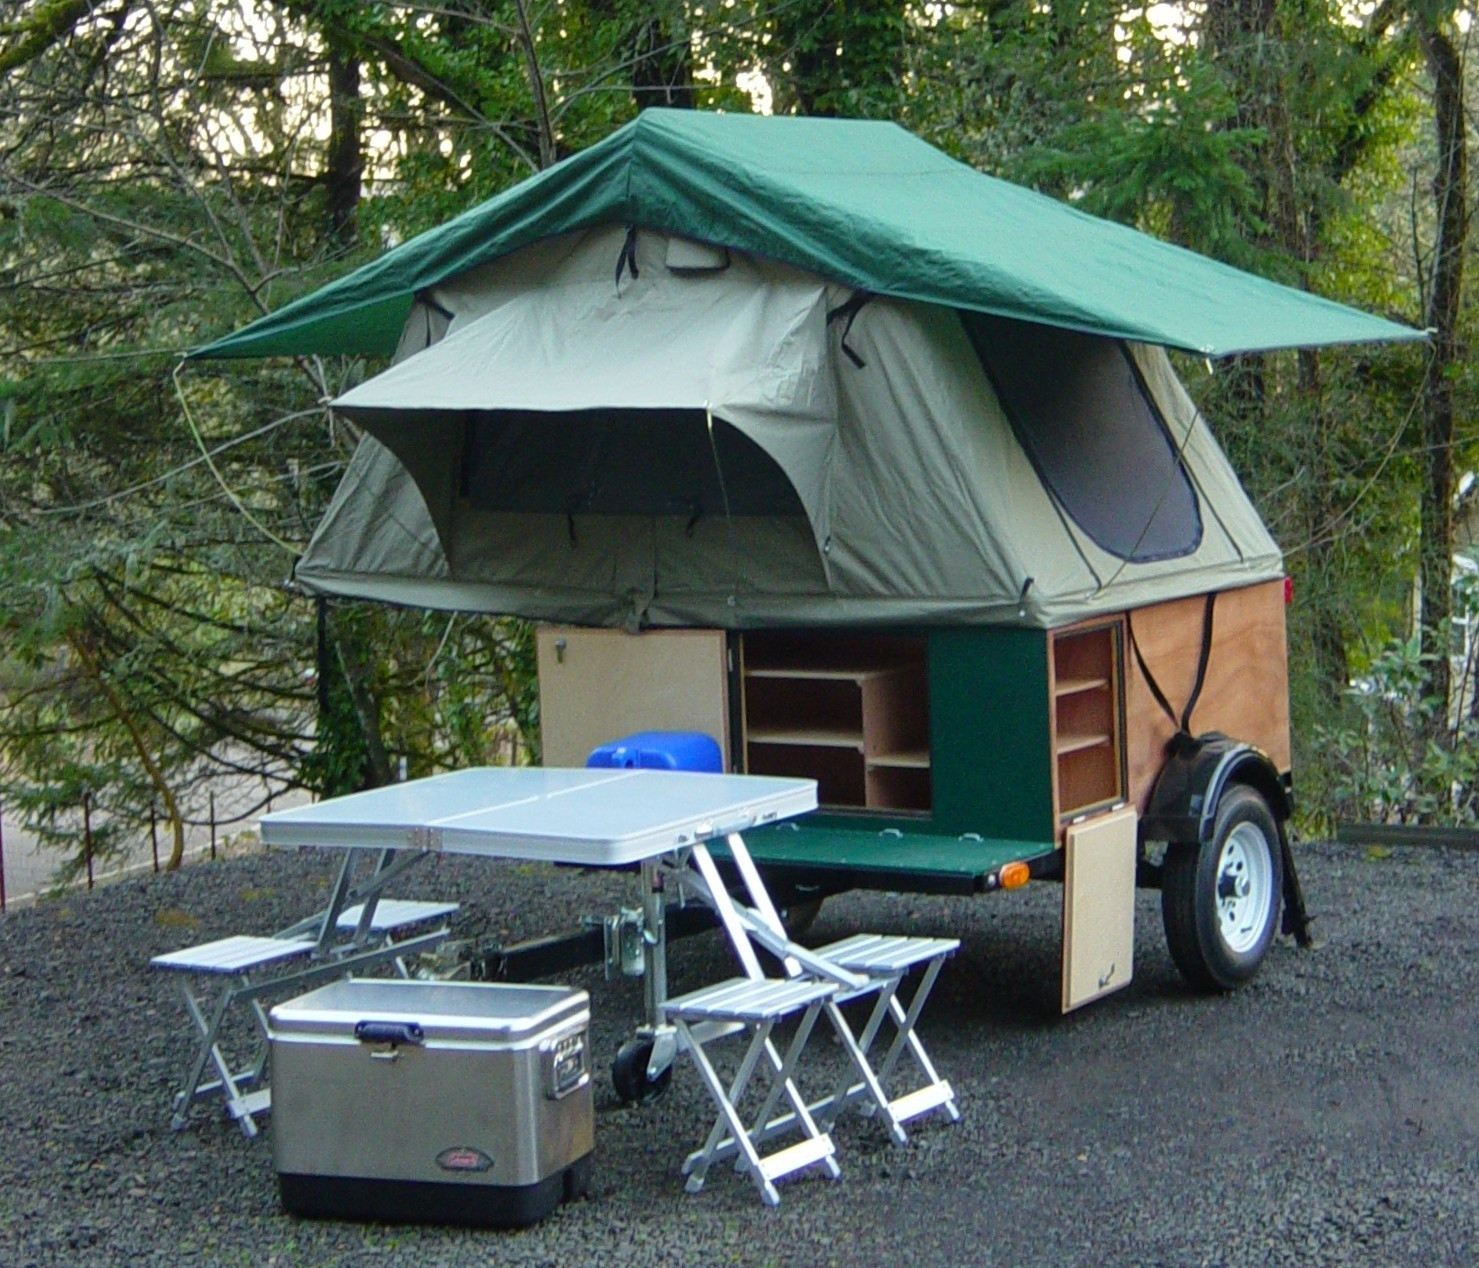 Best ideas about DIY Tent Trailer . Save or Pin DIY Explorer Box Camping Trailer Now.